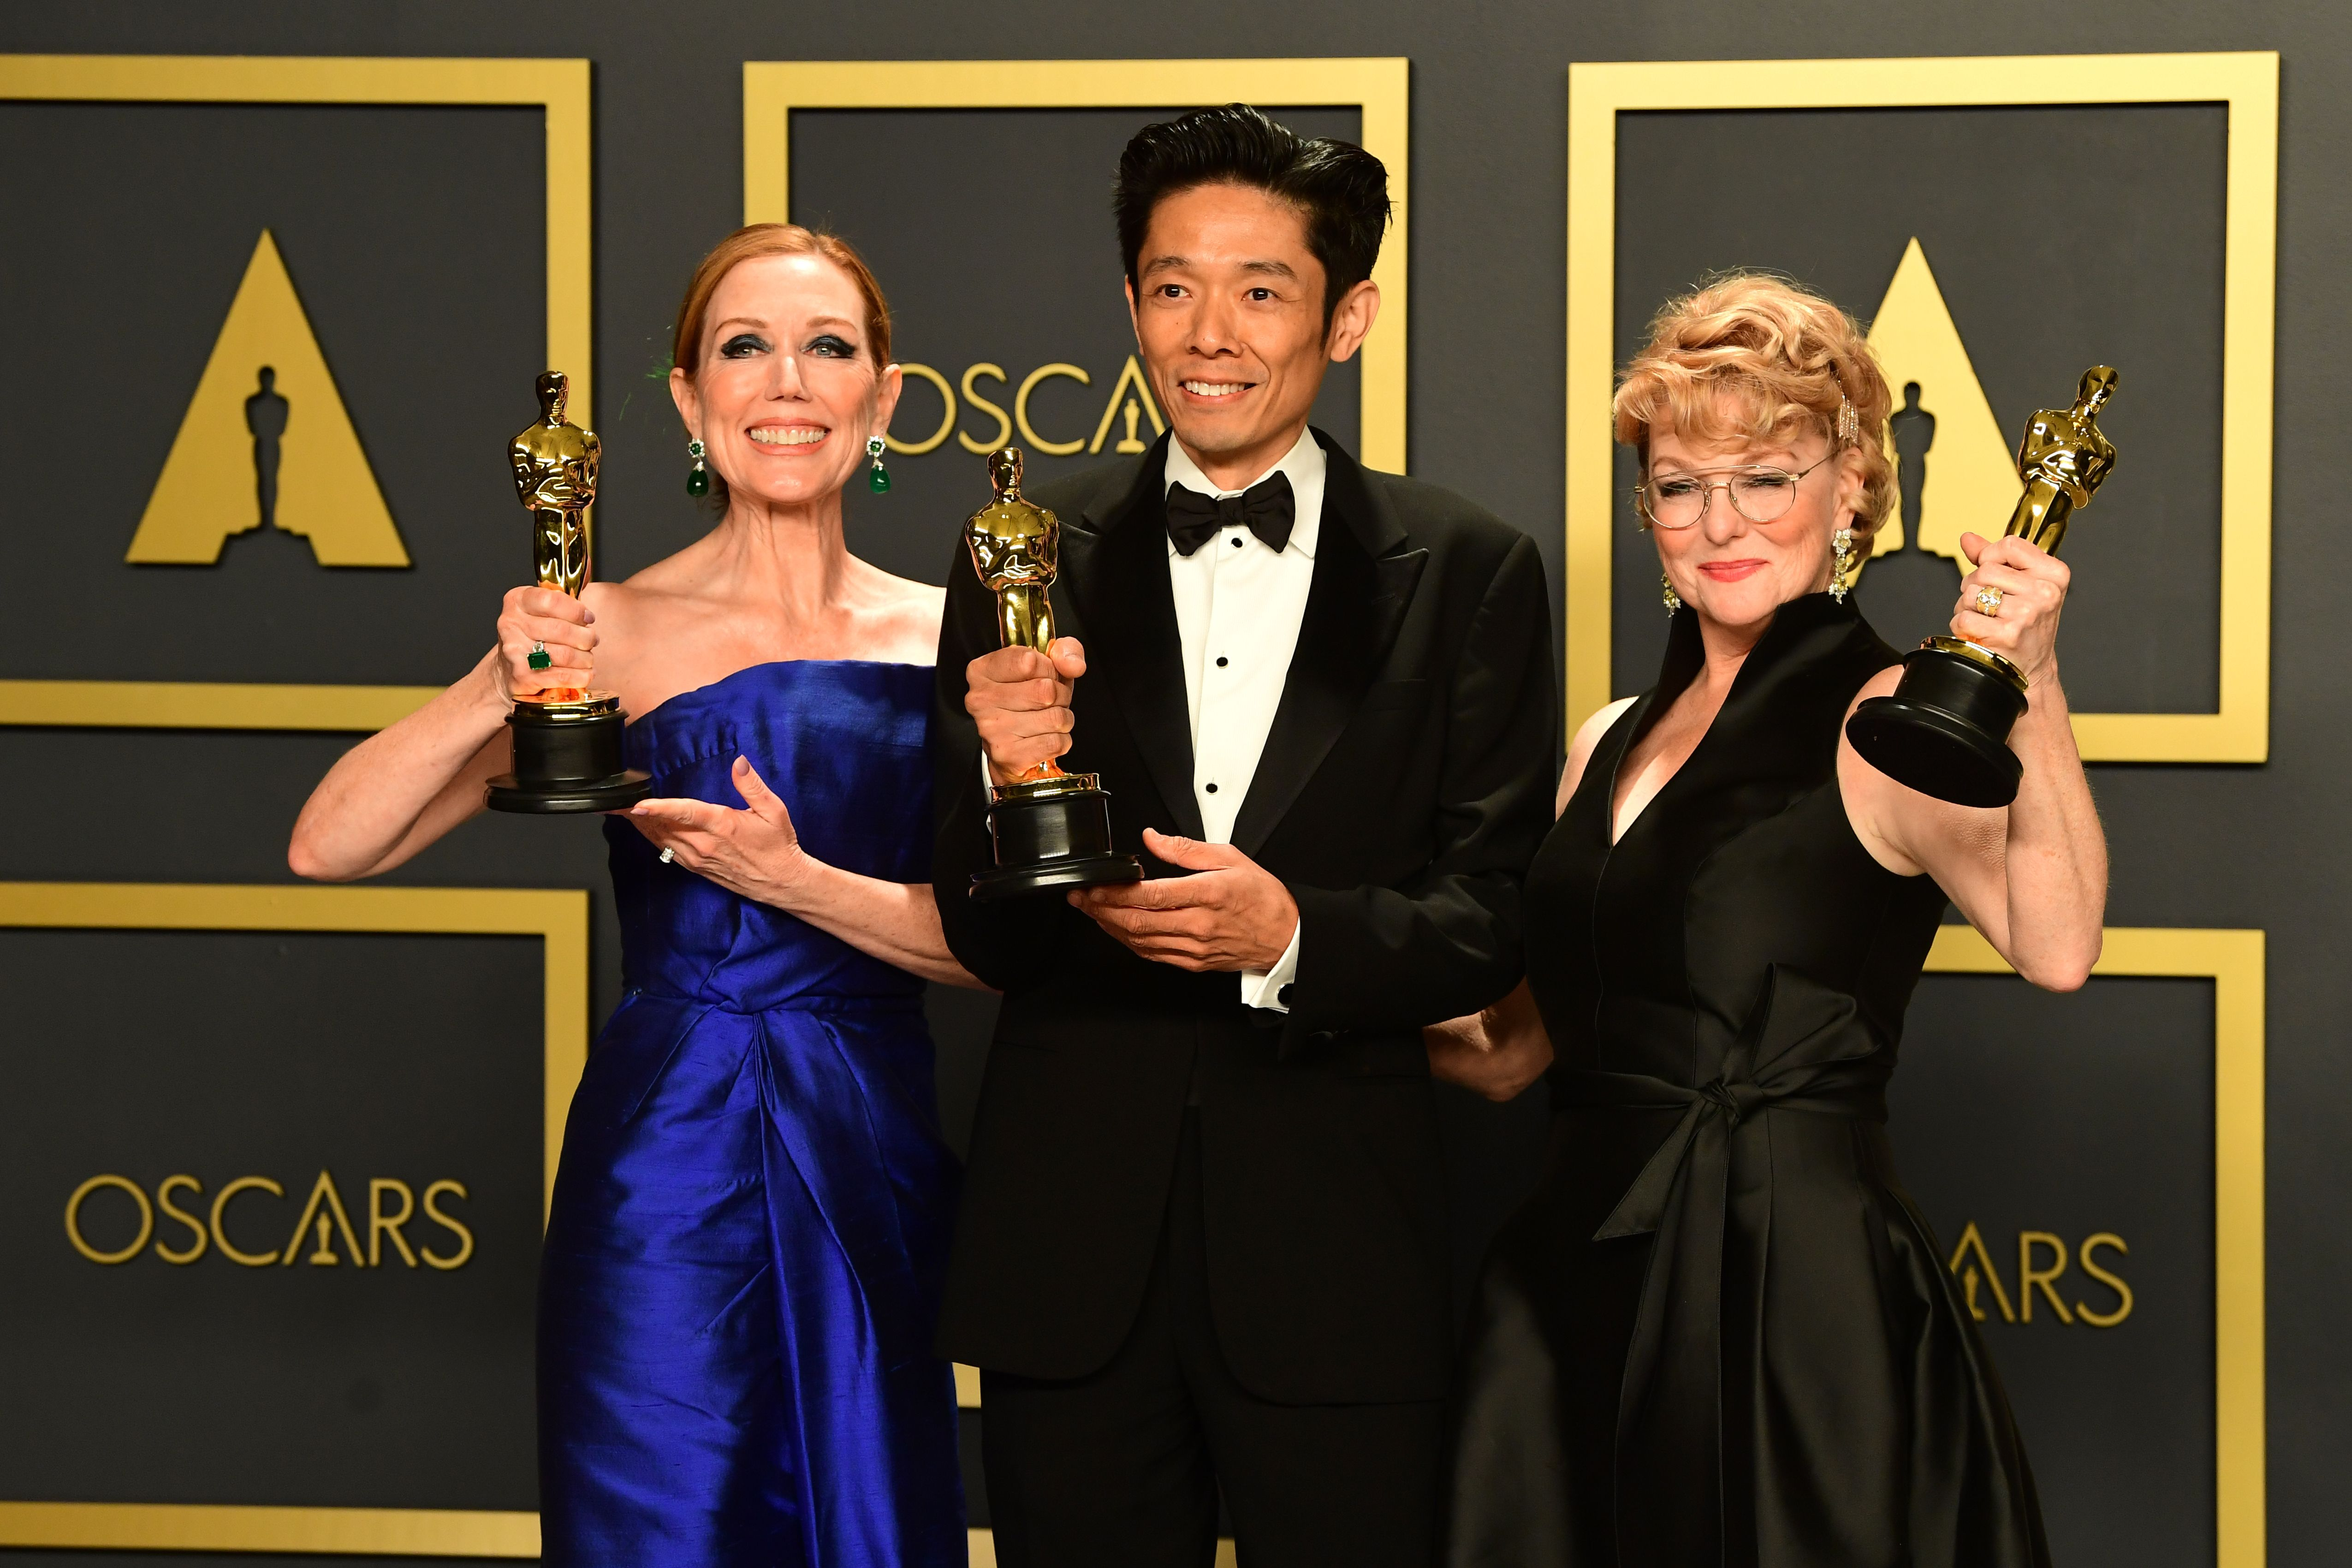 """US-Japanese makeup artist Kazu Hiro (C), US hair stylist Anne Morgan (L) and US makeup artist Vivian Baker pose in the press room with the Oscar for Best Makeup and Hairstyling for """"Bombshell"""" during the 92nd Oscars at the Dolby Theater in Hollywood, California on February 9, 2020. (Photo by FREDERIC J. BROWN / AFP) (Photo by FREDERIC J. BROWN/AFP via Getty Images)"""